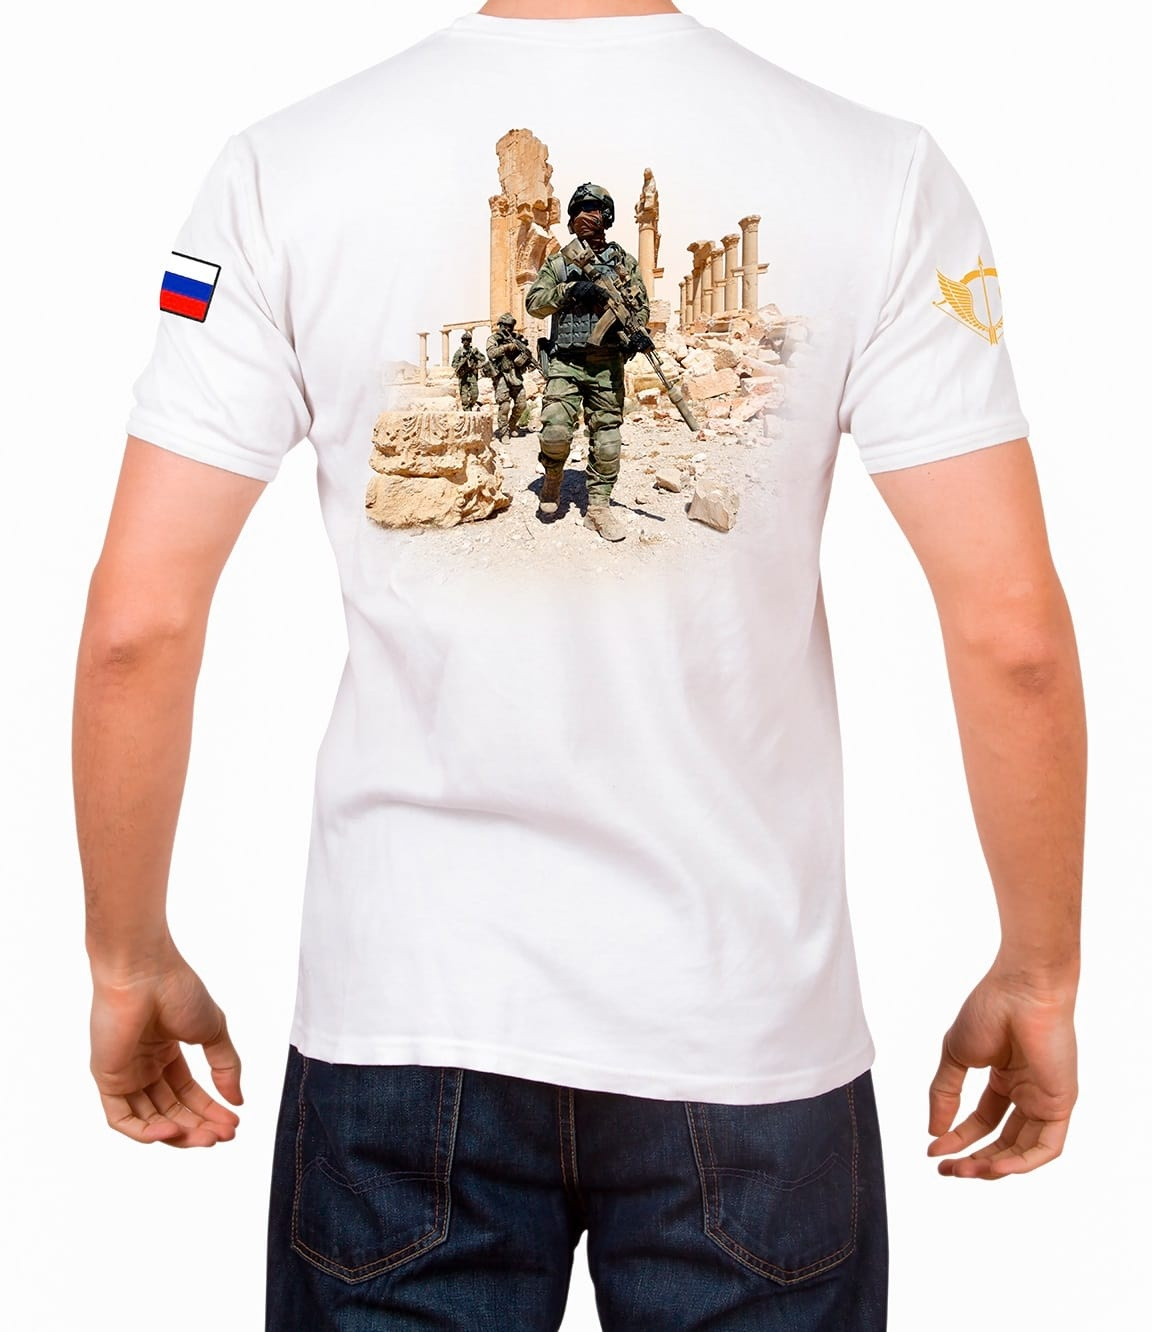 T-shirtФутболки/Поло<br>Mens T-shirt from the Syrian Collection, released in a limited edition for the Special Operations Forces of the Russian Federation.<br><br>Цвет: Белый<br>Размер: 2XL<br>Пол: Мужчинам